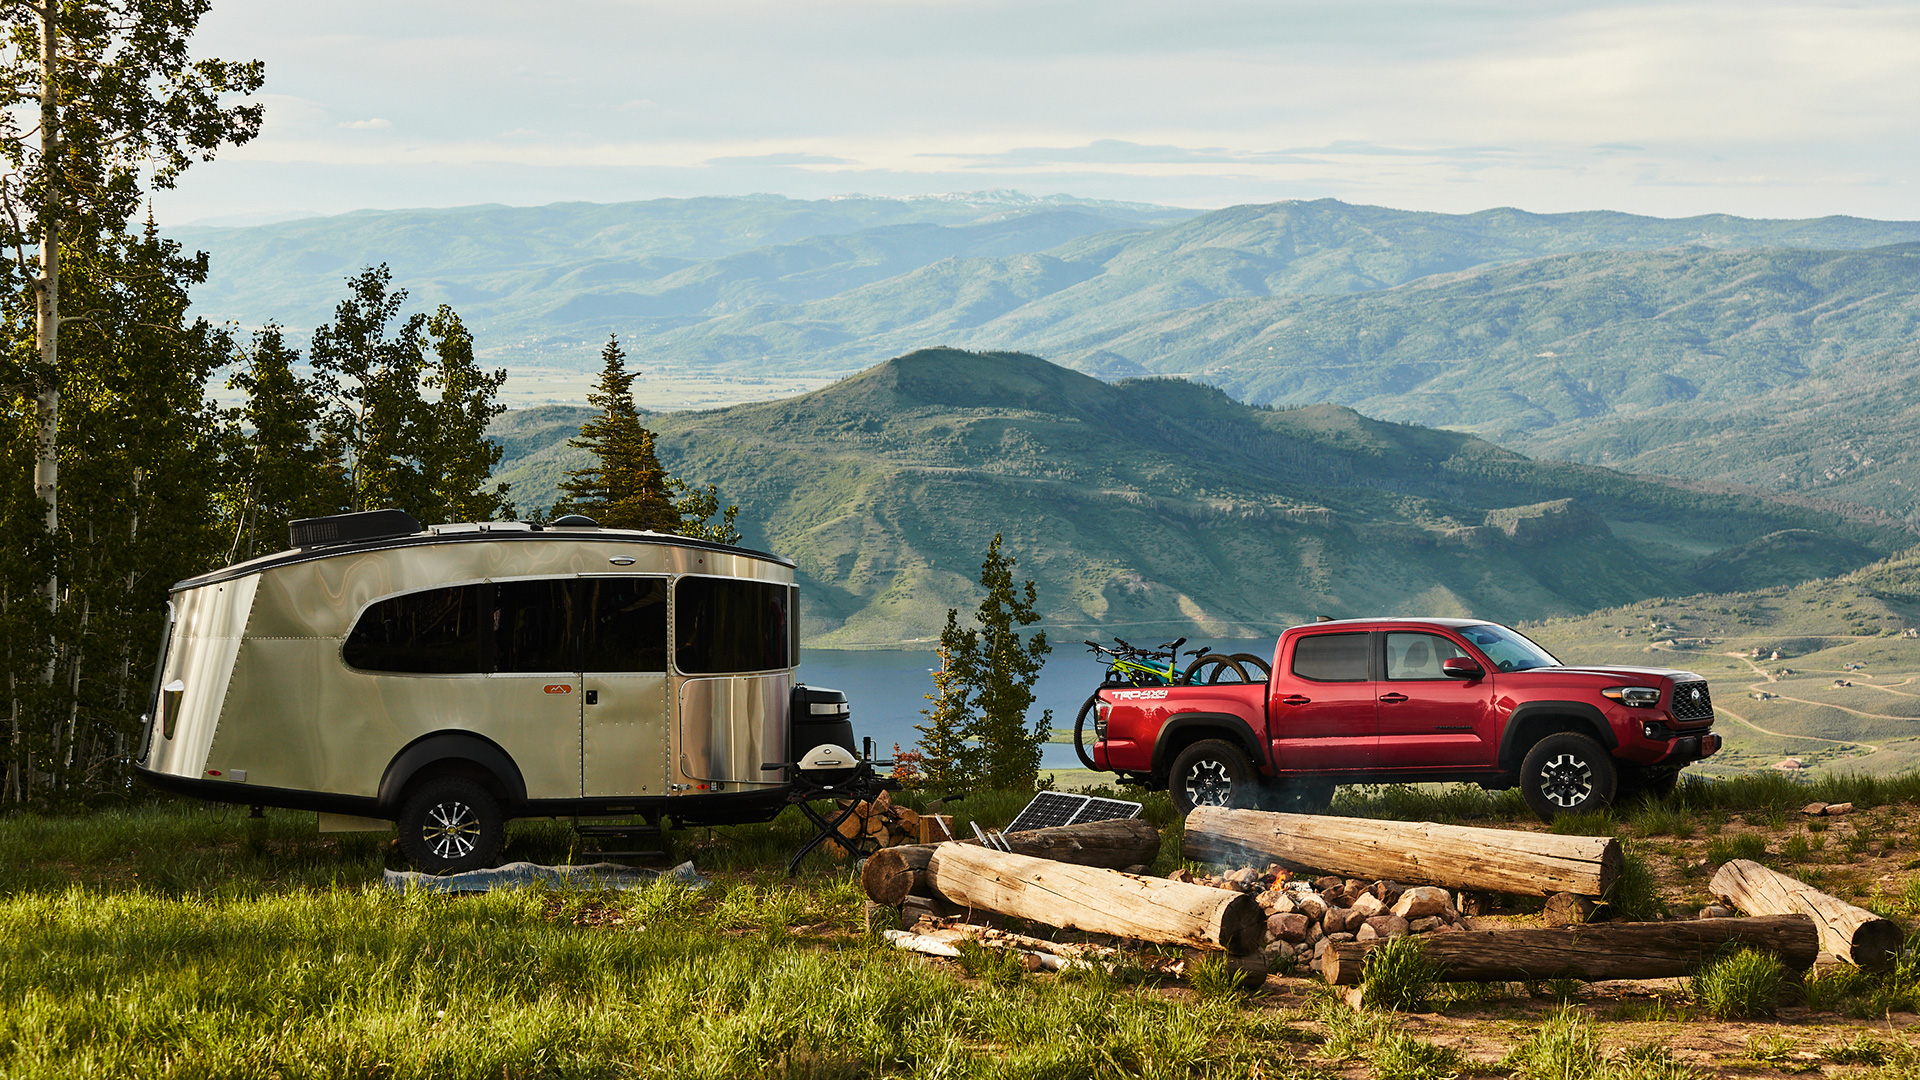 Airstream Basecamp 20X Lifestyle on Mountain